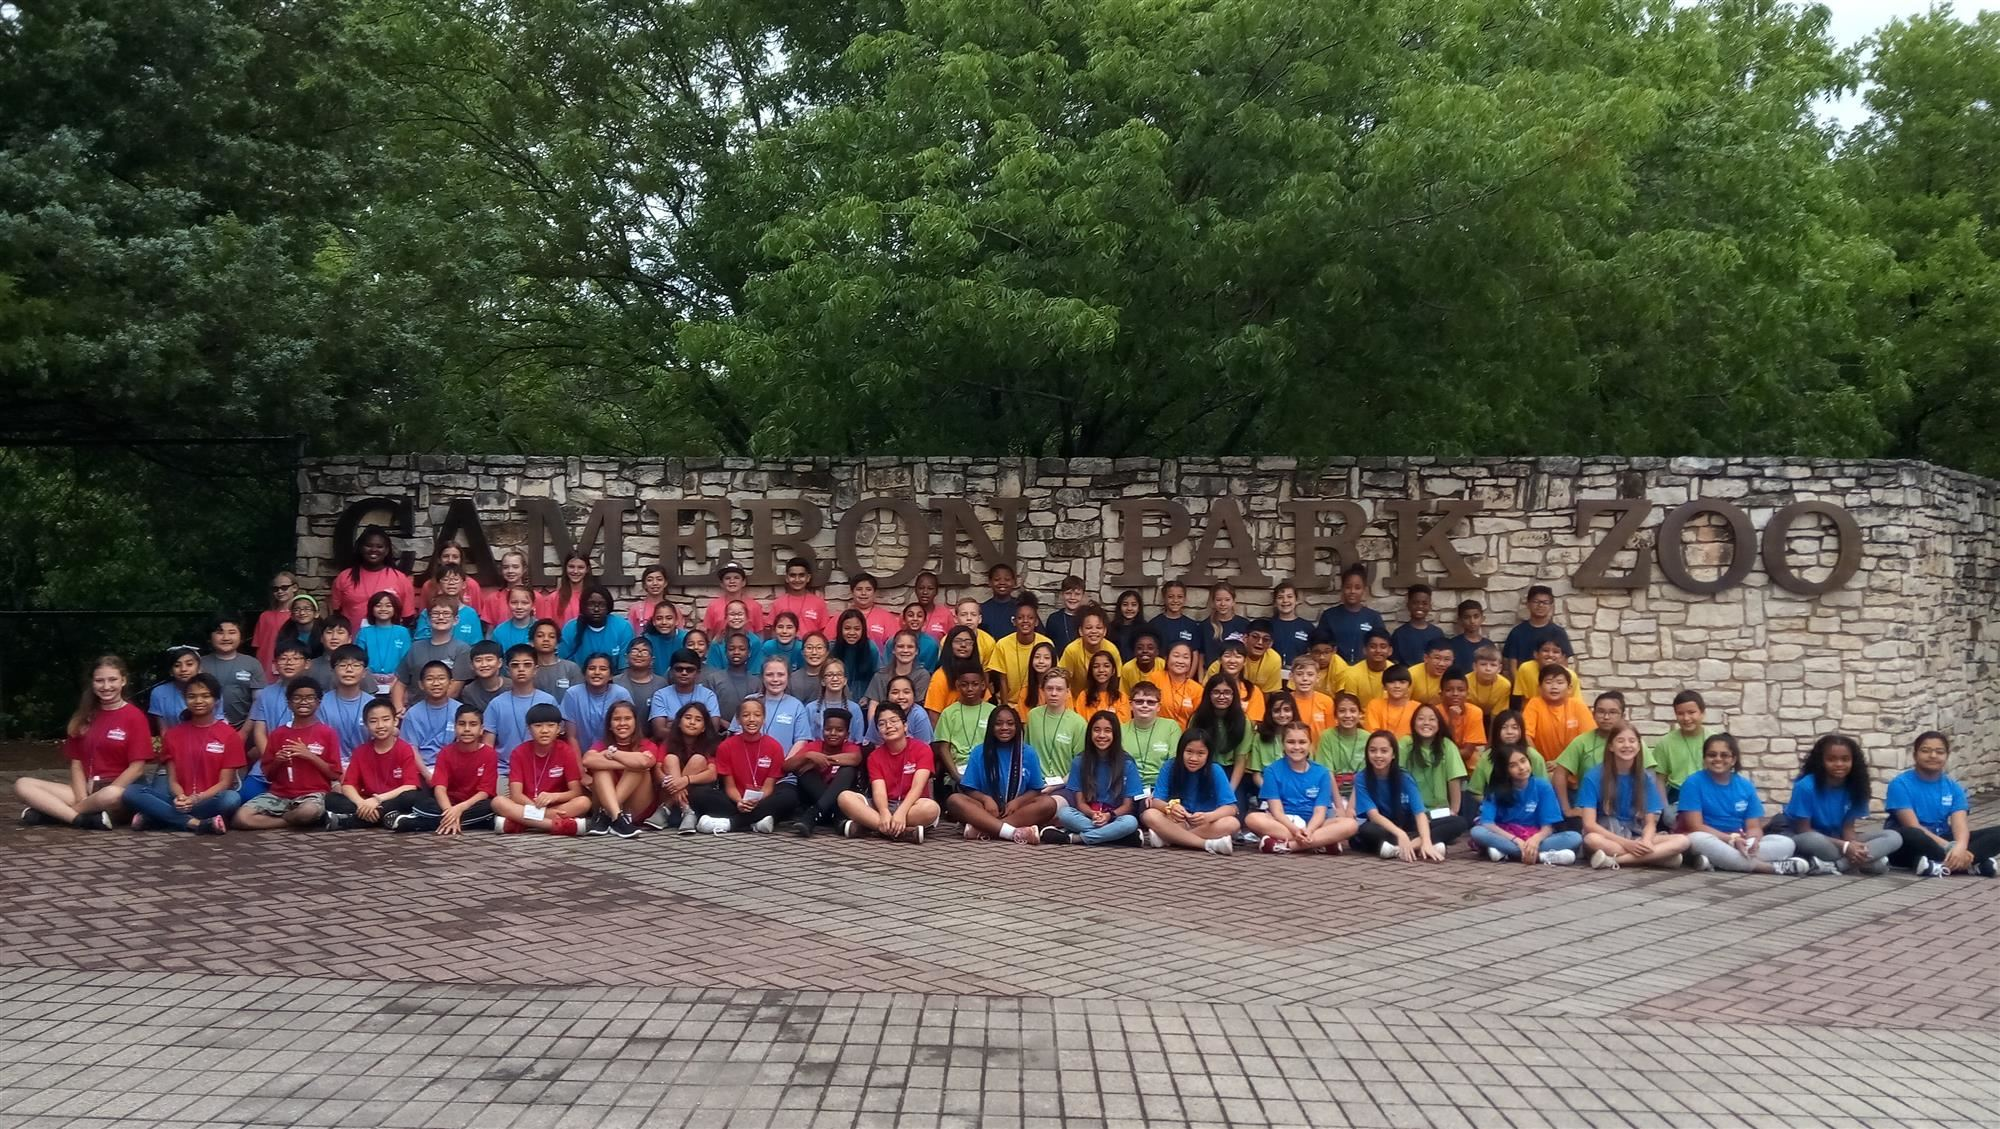 Hebron valley fifth-grade field trip group photo 2019